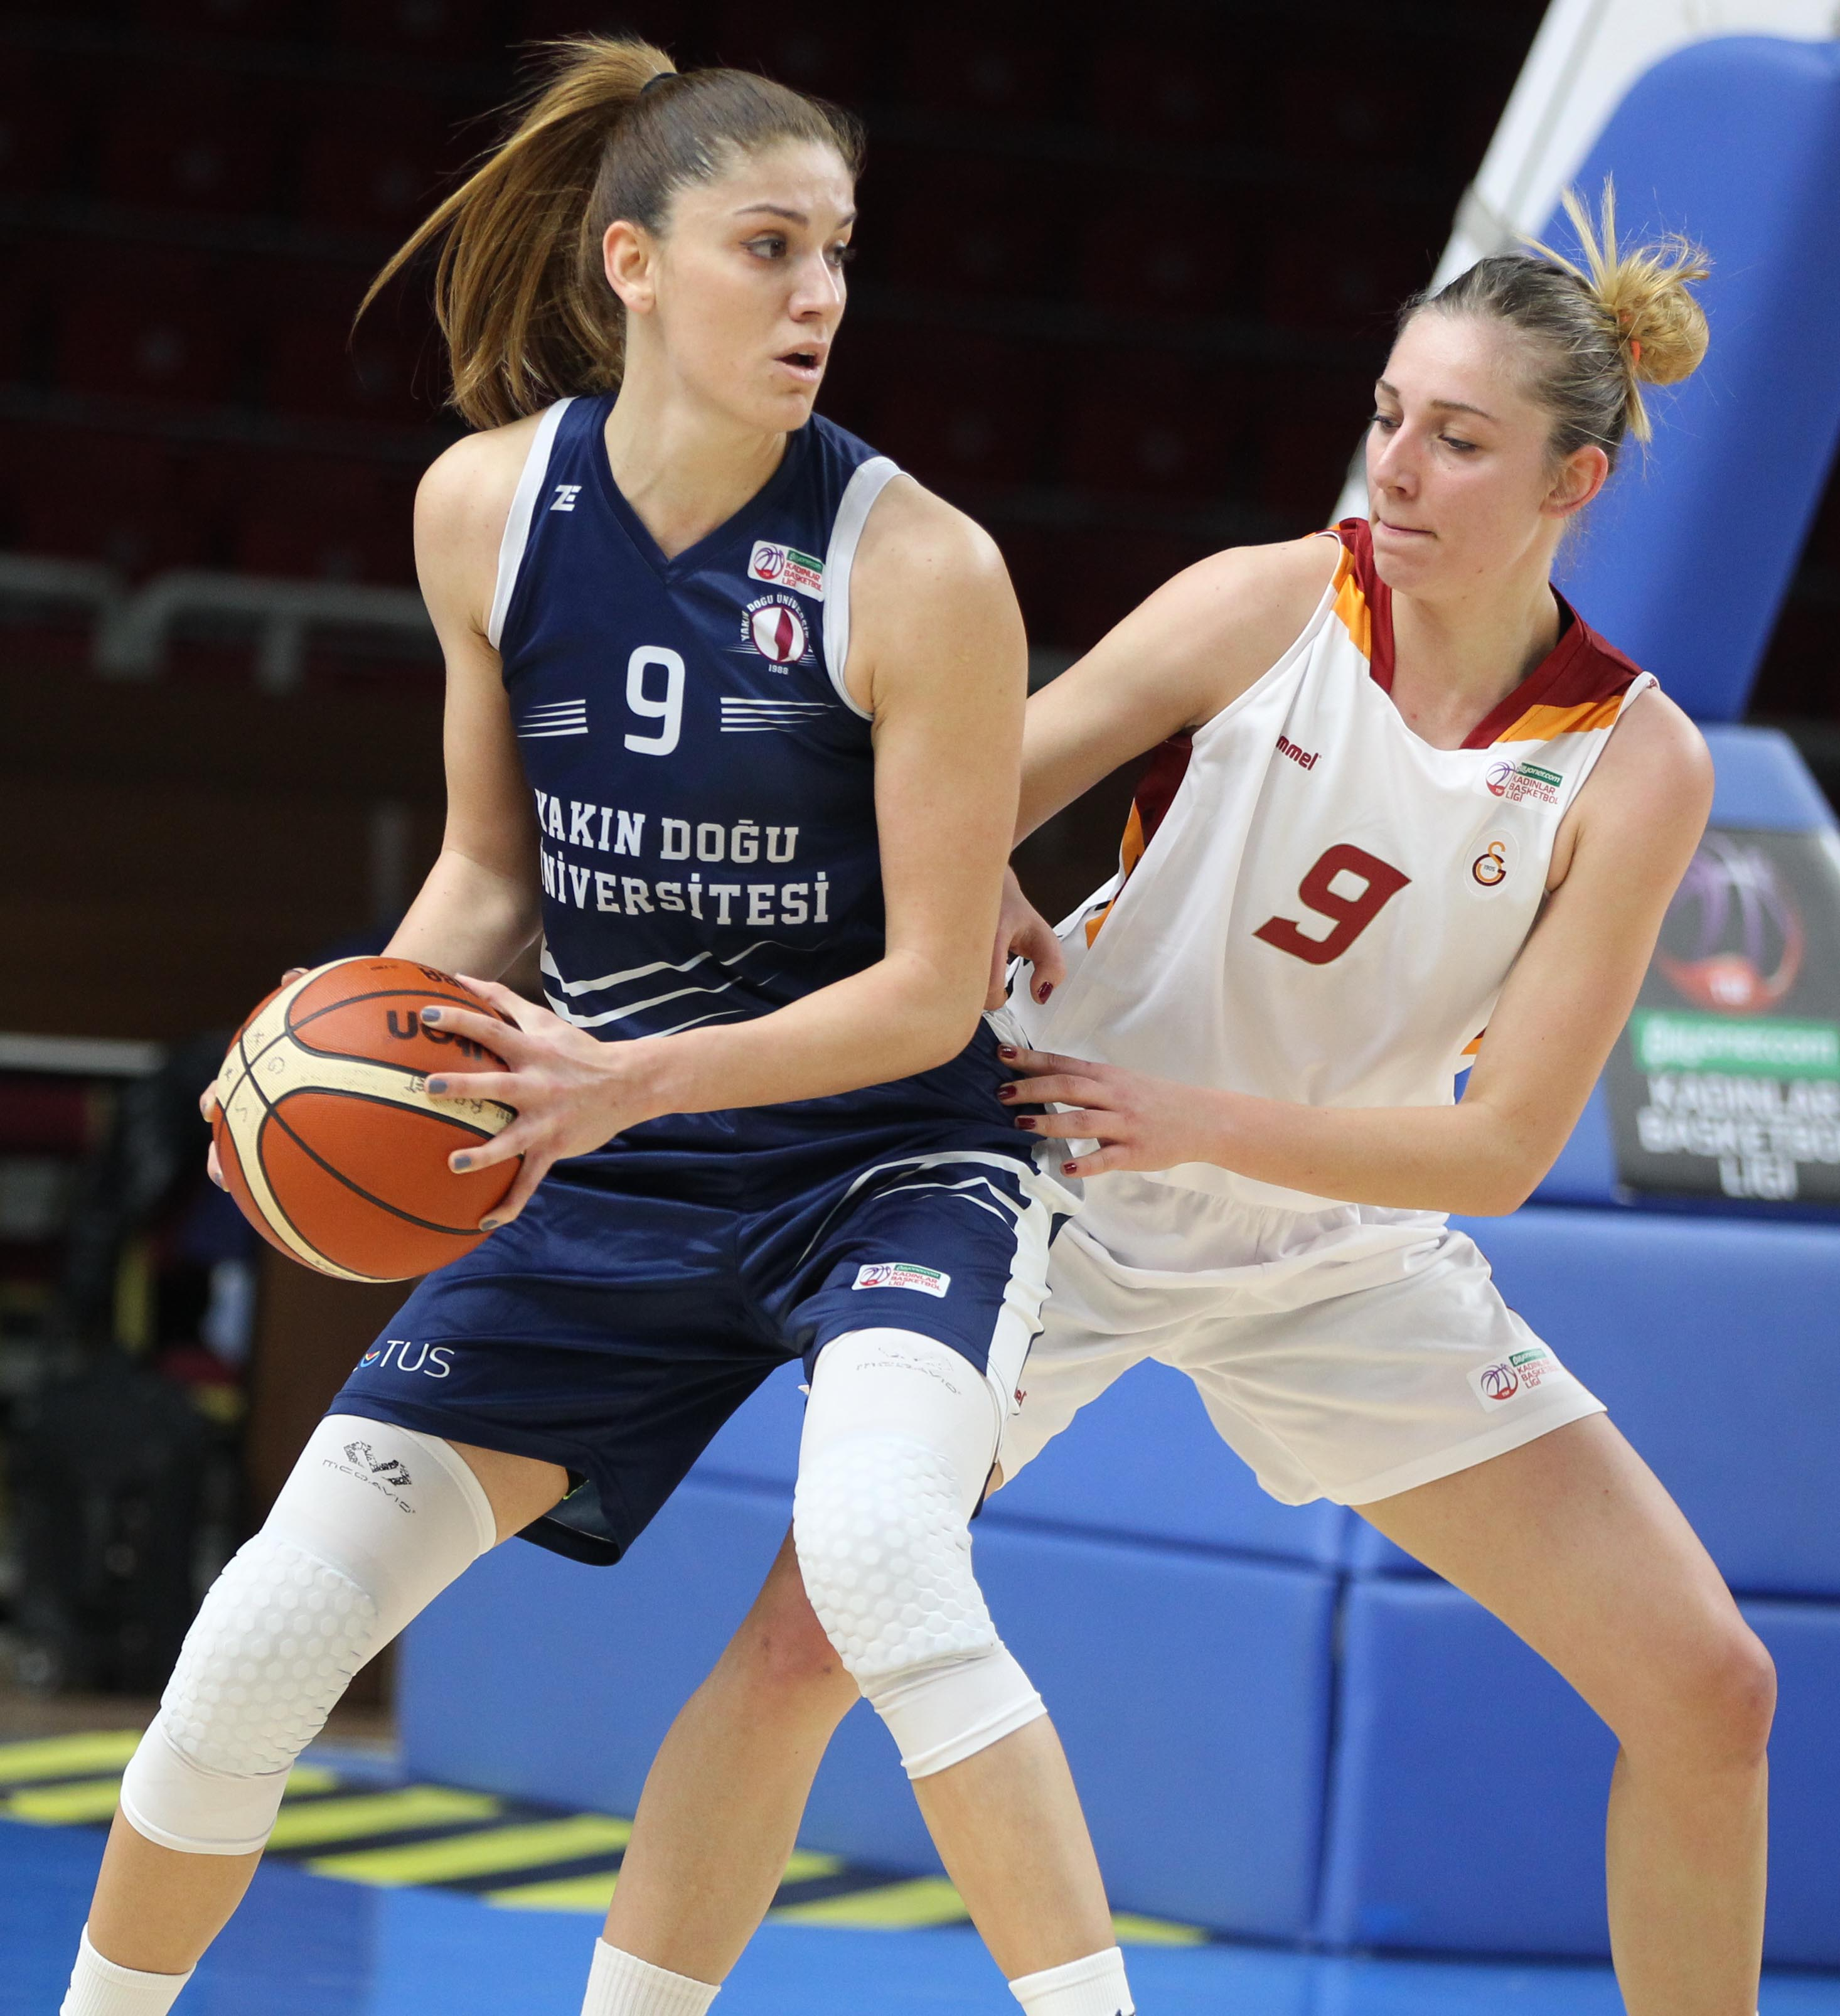 Near East University becomes leader after defeating Galatasaray… Galatasaray: 60 – Near East University: 81